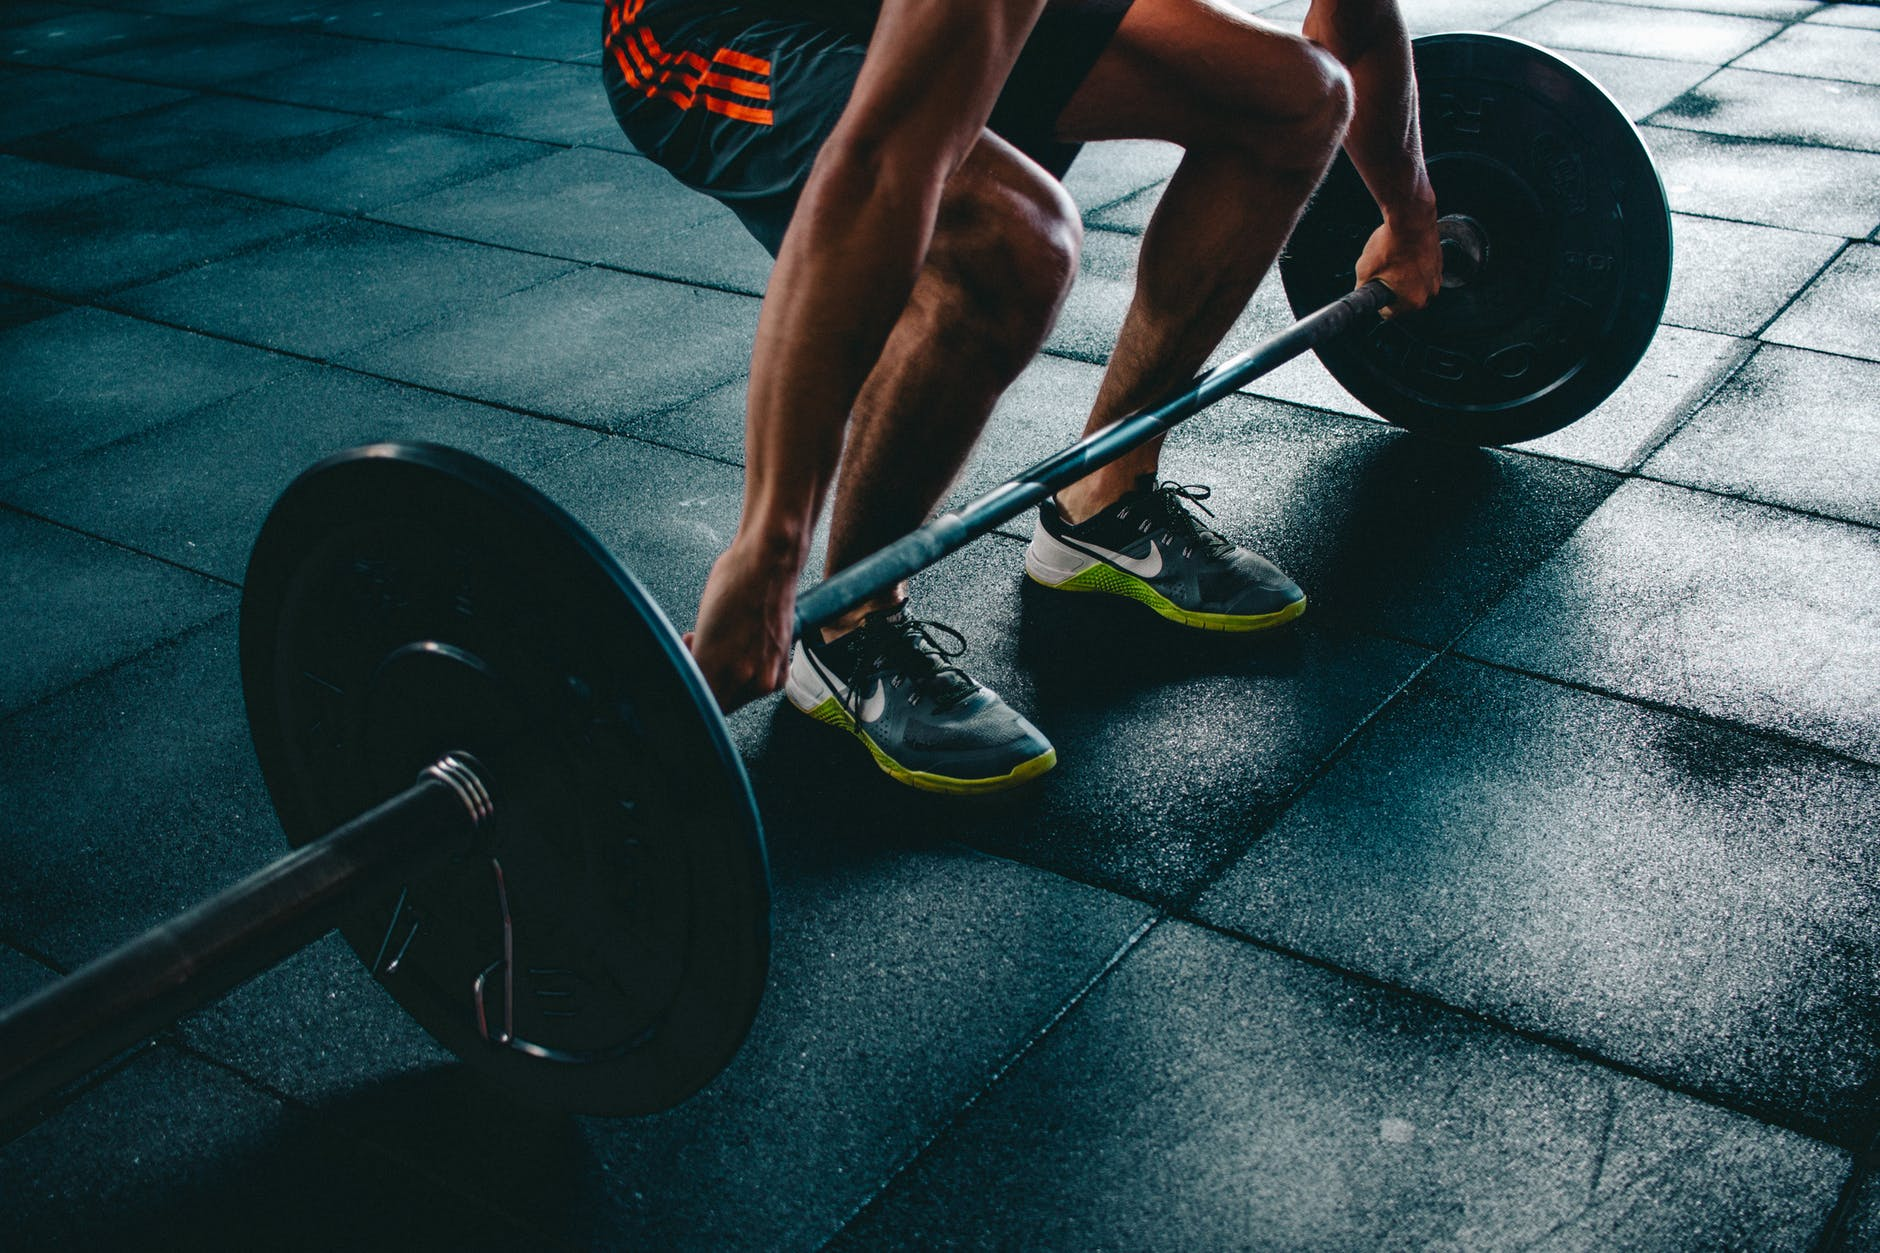 3 Reasons Why Weight Training for Seniors is Recommended